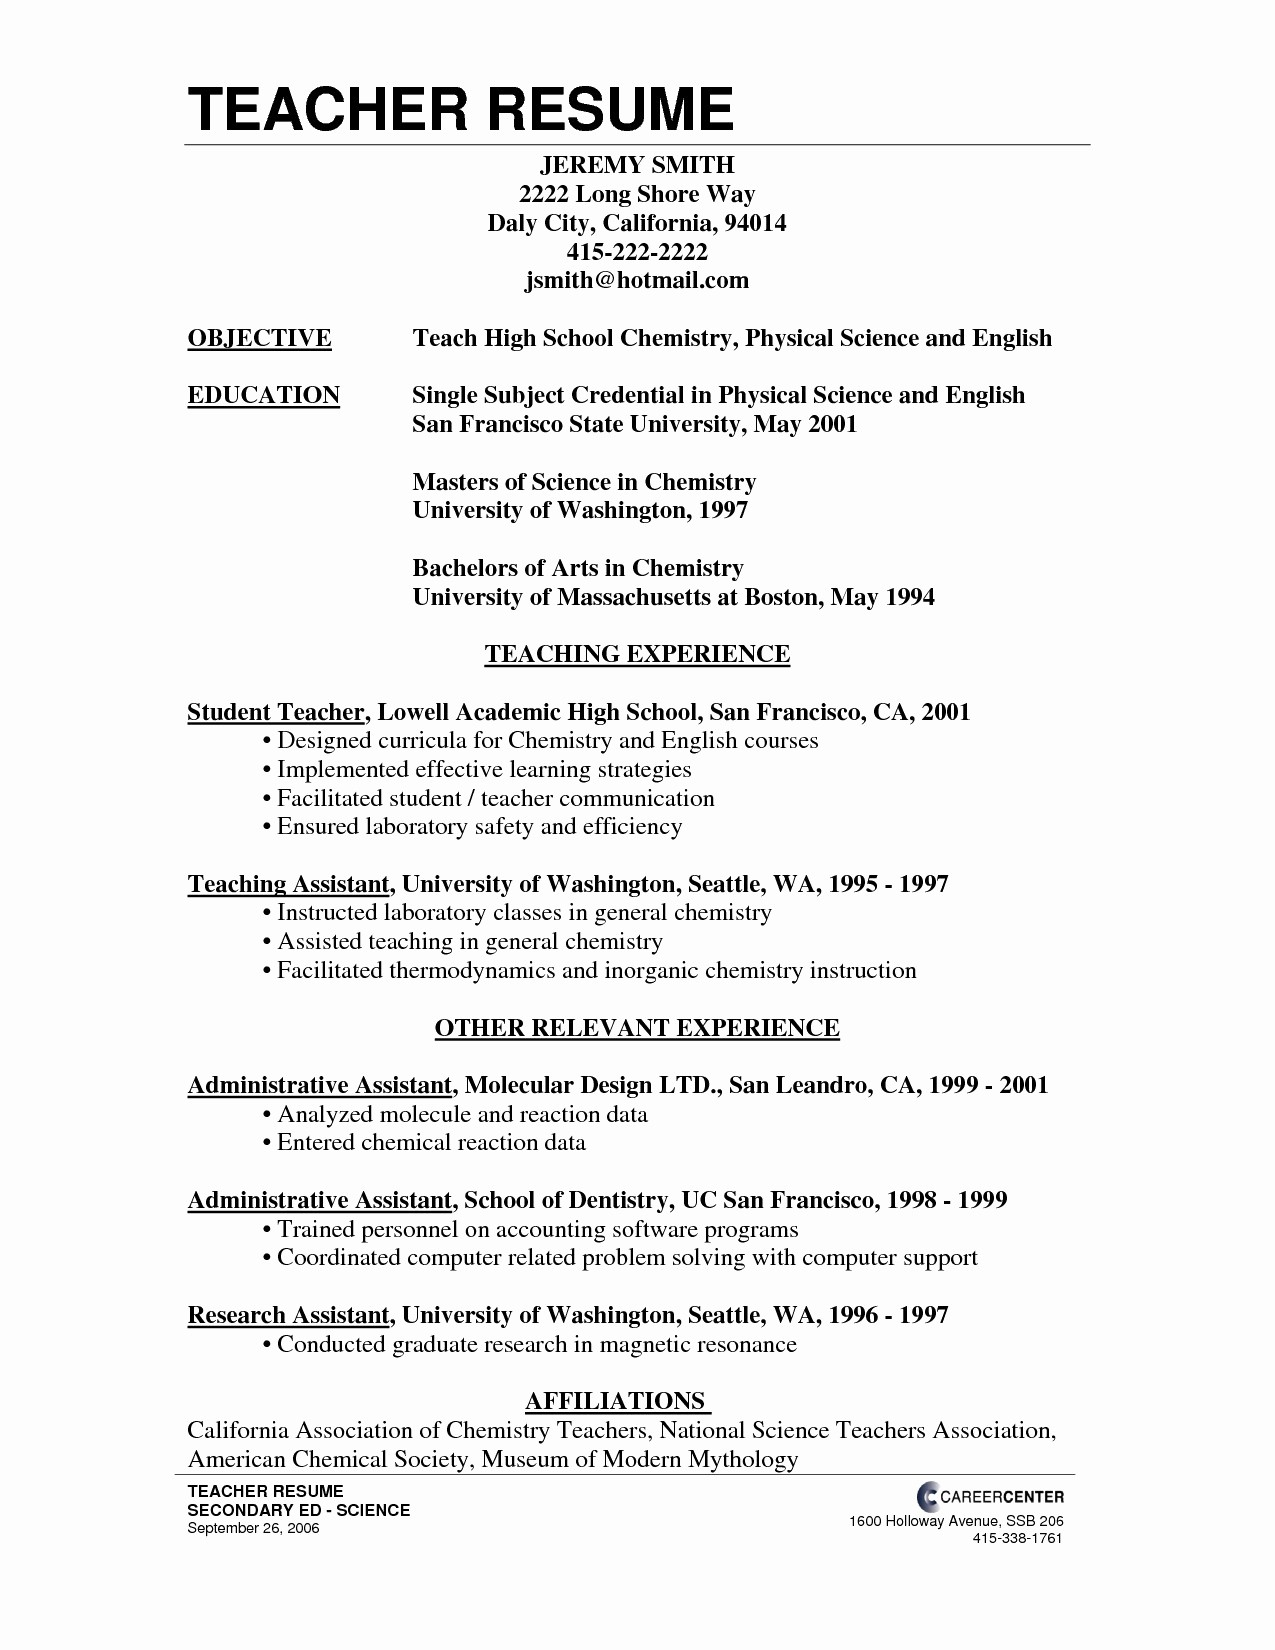 Cfo Cover Letter Template - Cfo Resume Template Inspirational Actor Resumes 0d